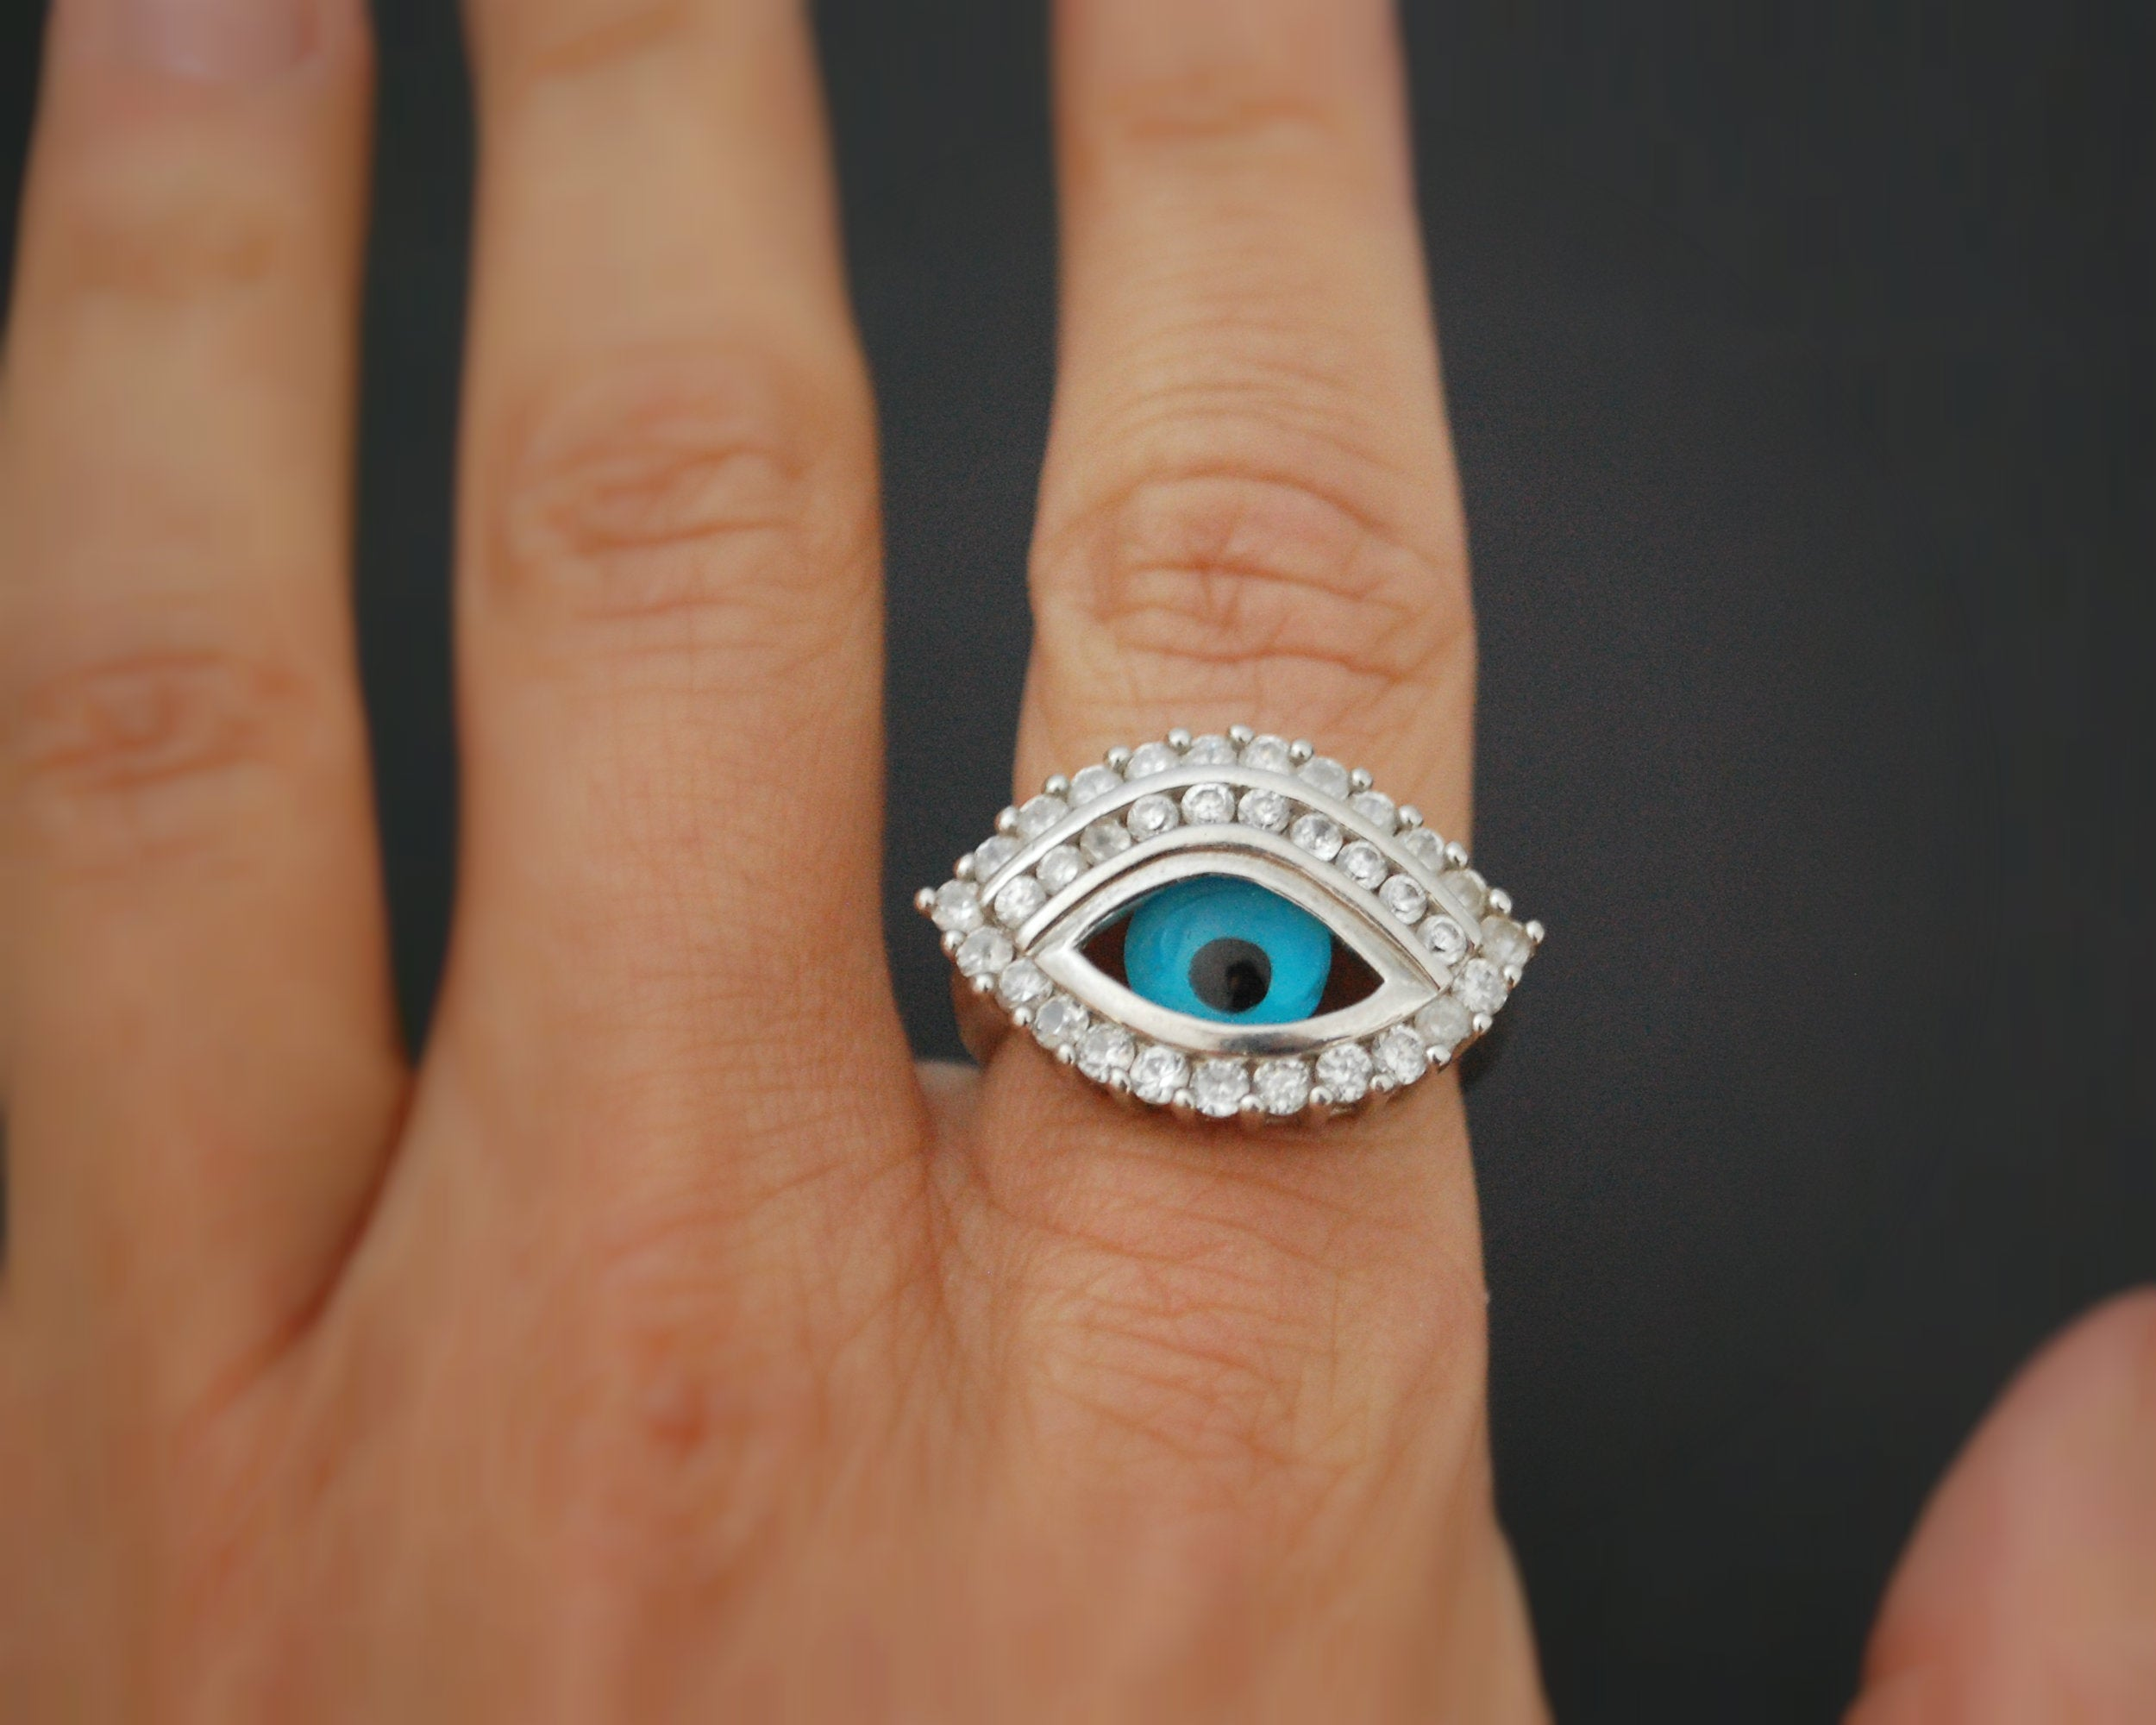 Eye Ring - Size 8